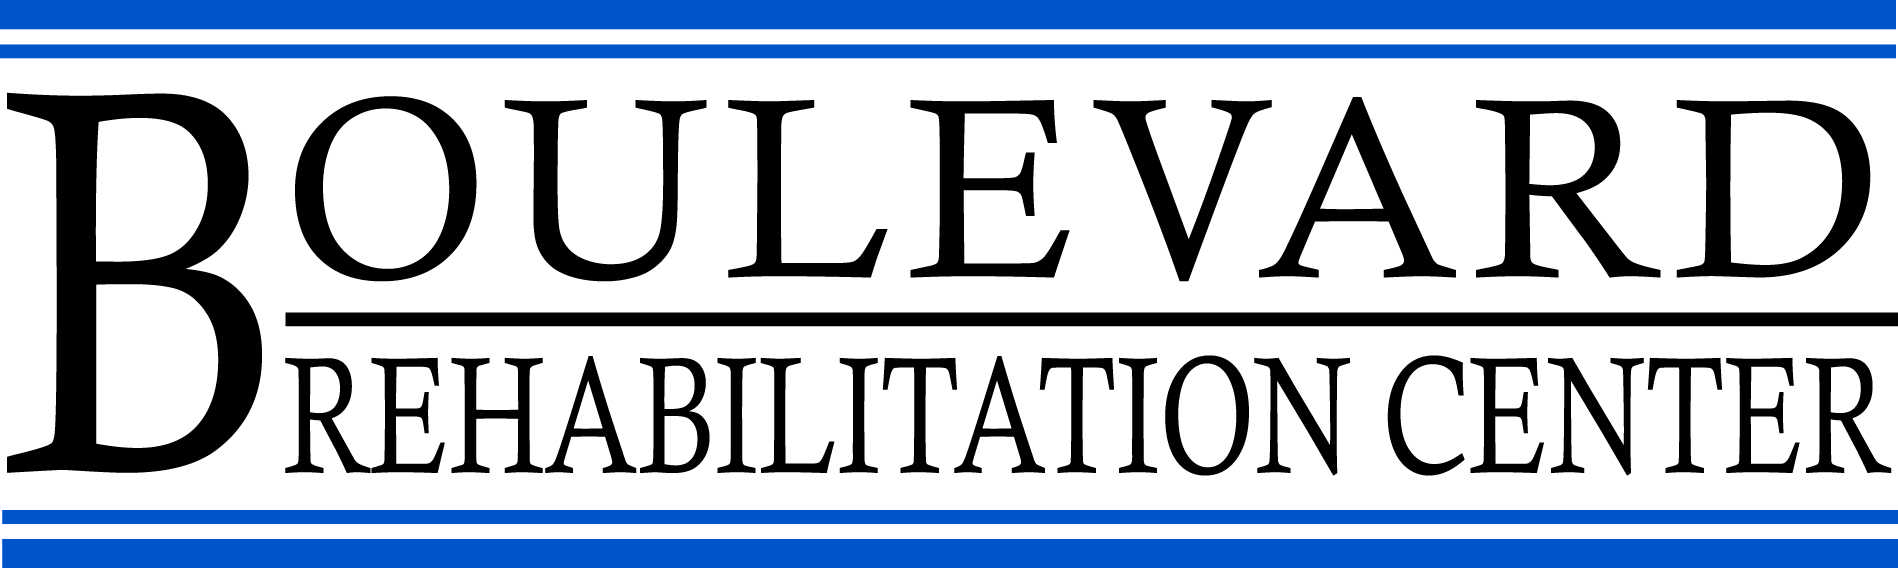 Boulevard Rehabilitation Center